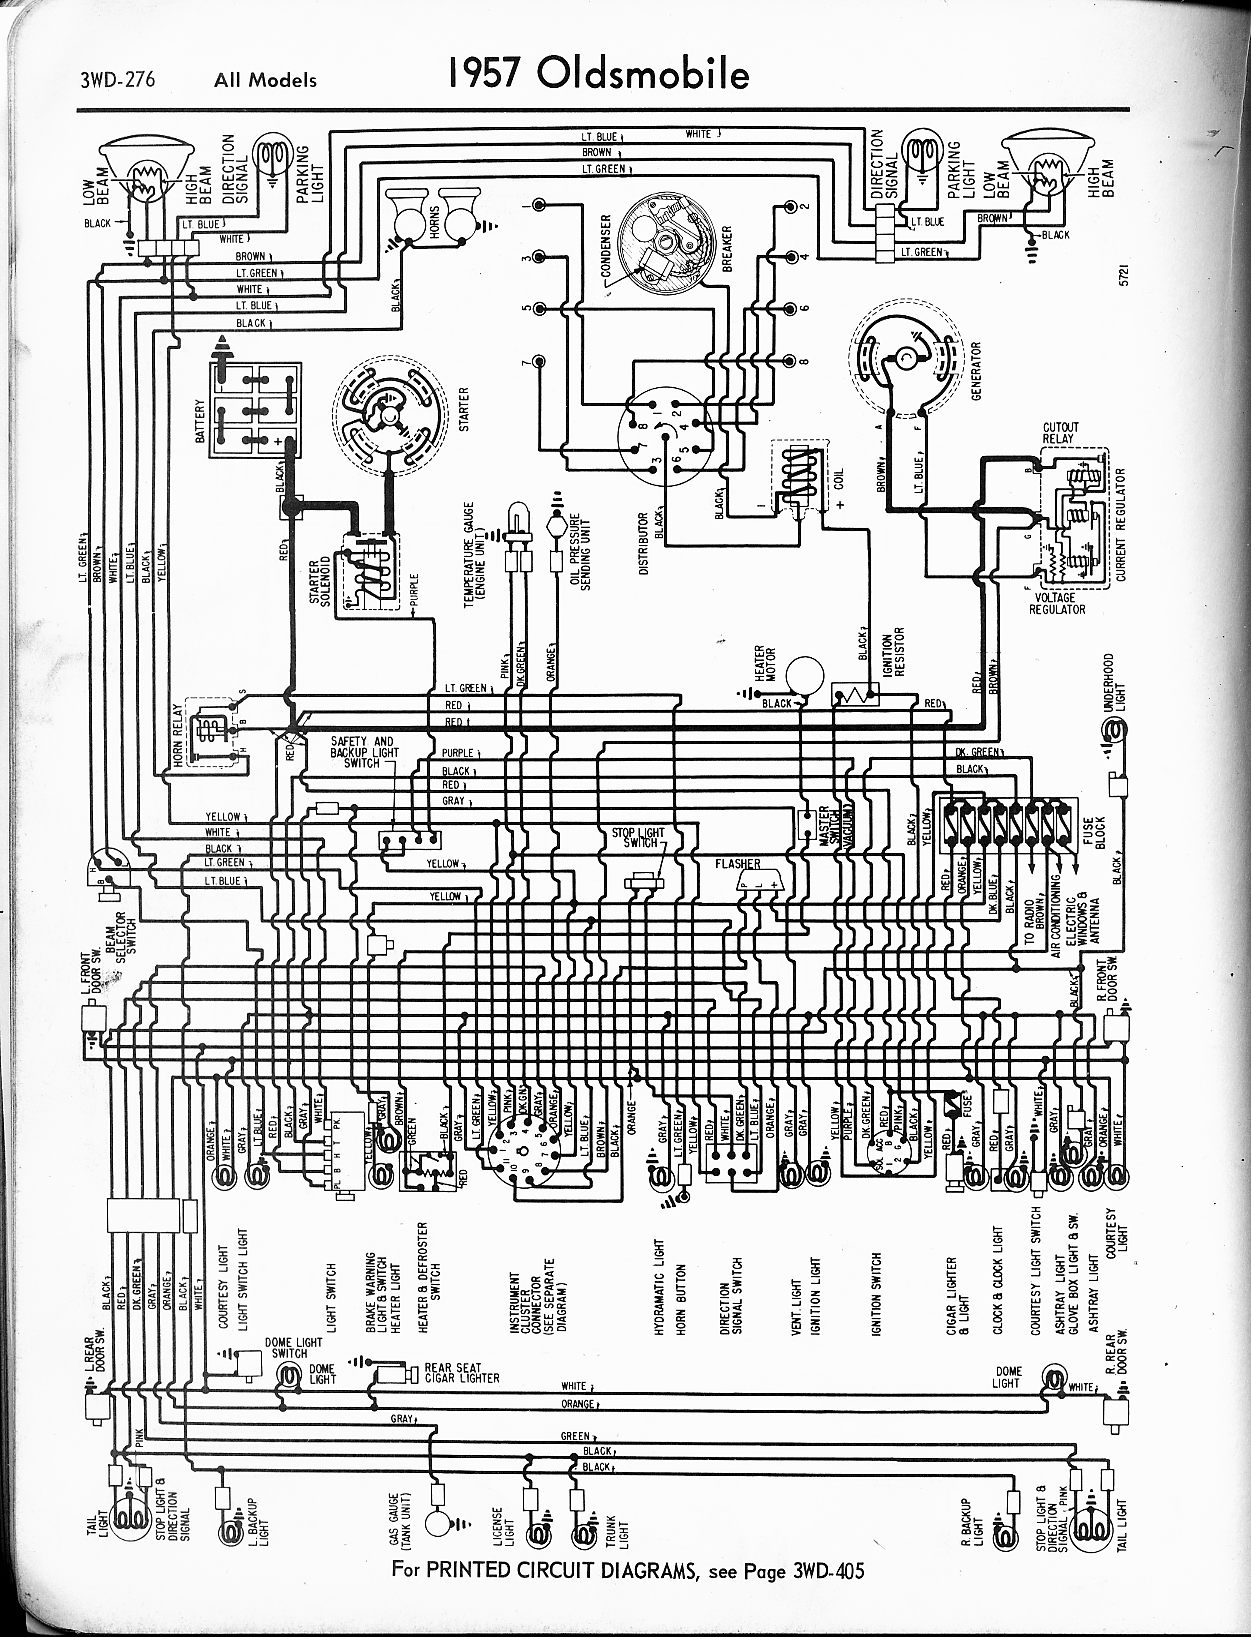 1969 Lincoln Wiring Diagram Library Motor Diagrams Application U2022 Rh Cleanairclub Co Ford Mustang